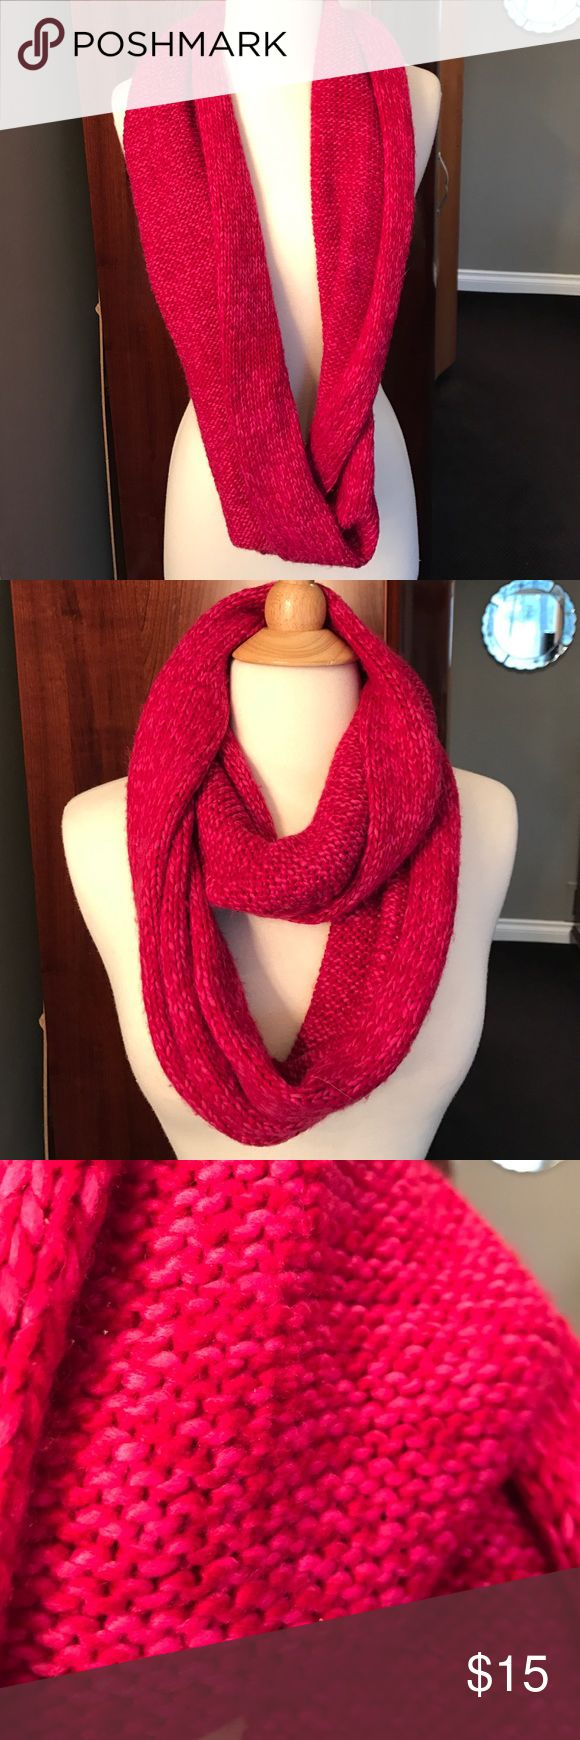 Knit Fuschia Circle Scarf NWOT Fuchsia Circle Scarf. Can be worn several ways.  Received as a gift and have not worn.  100% Acrylic.  🚫NO TRADES🚫 Jackets & Coats